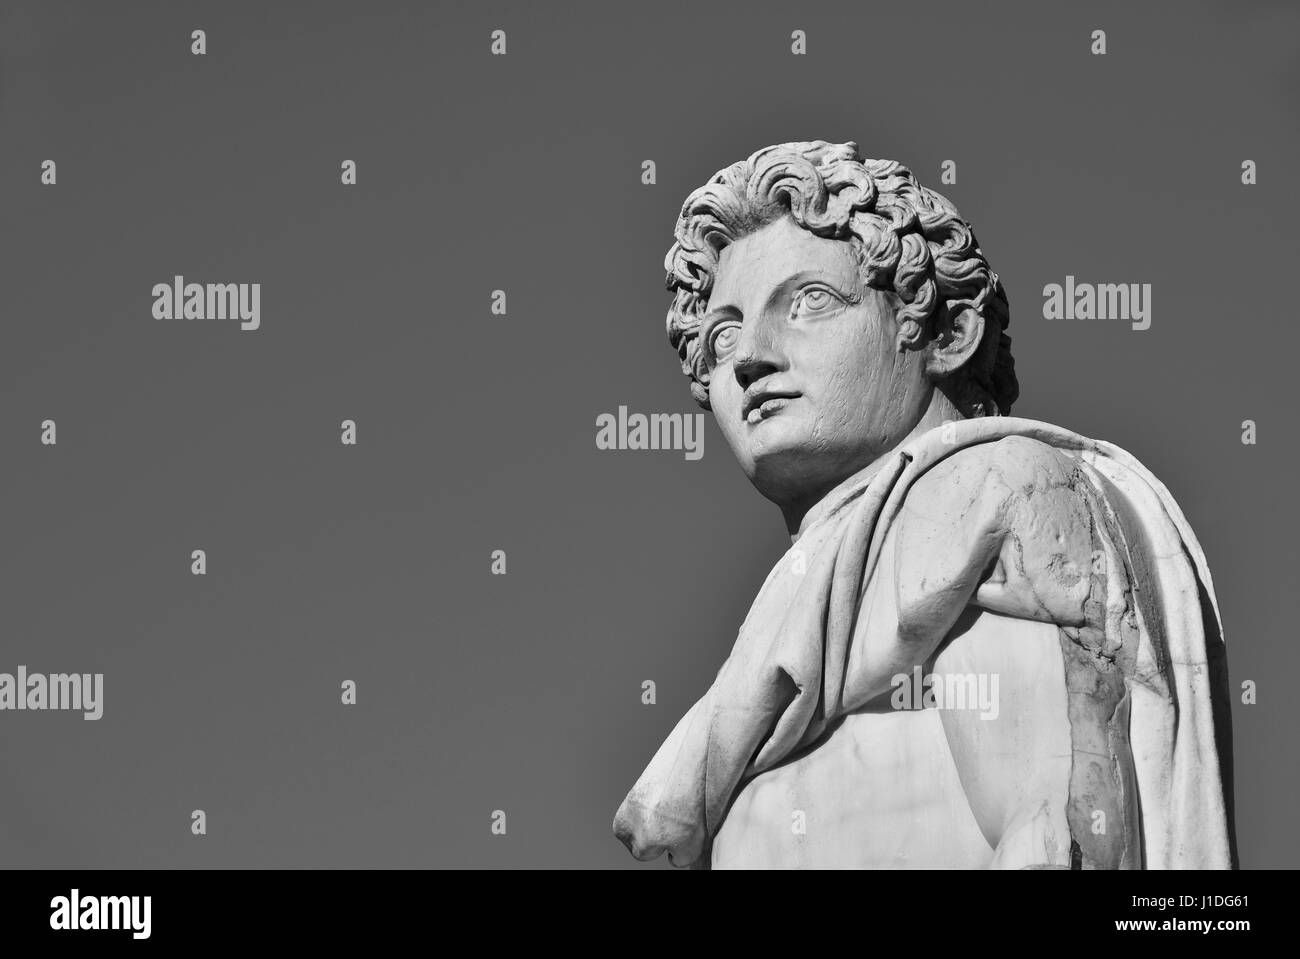 Ancient roman statue of Dioskouri at the top of Capitoline Hill in Rome, made in the 1st century BC (Black and White - Stock Image